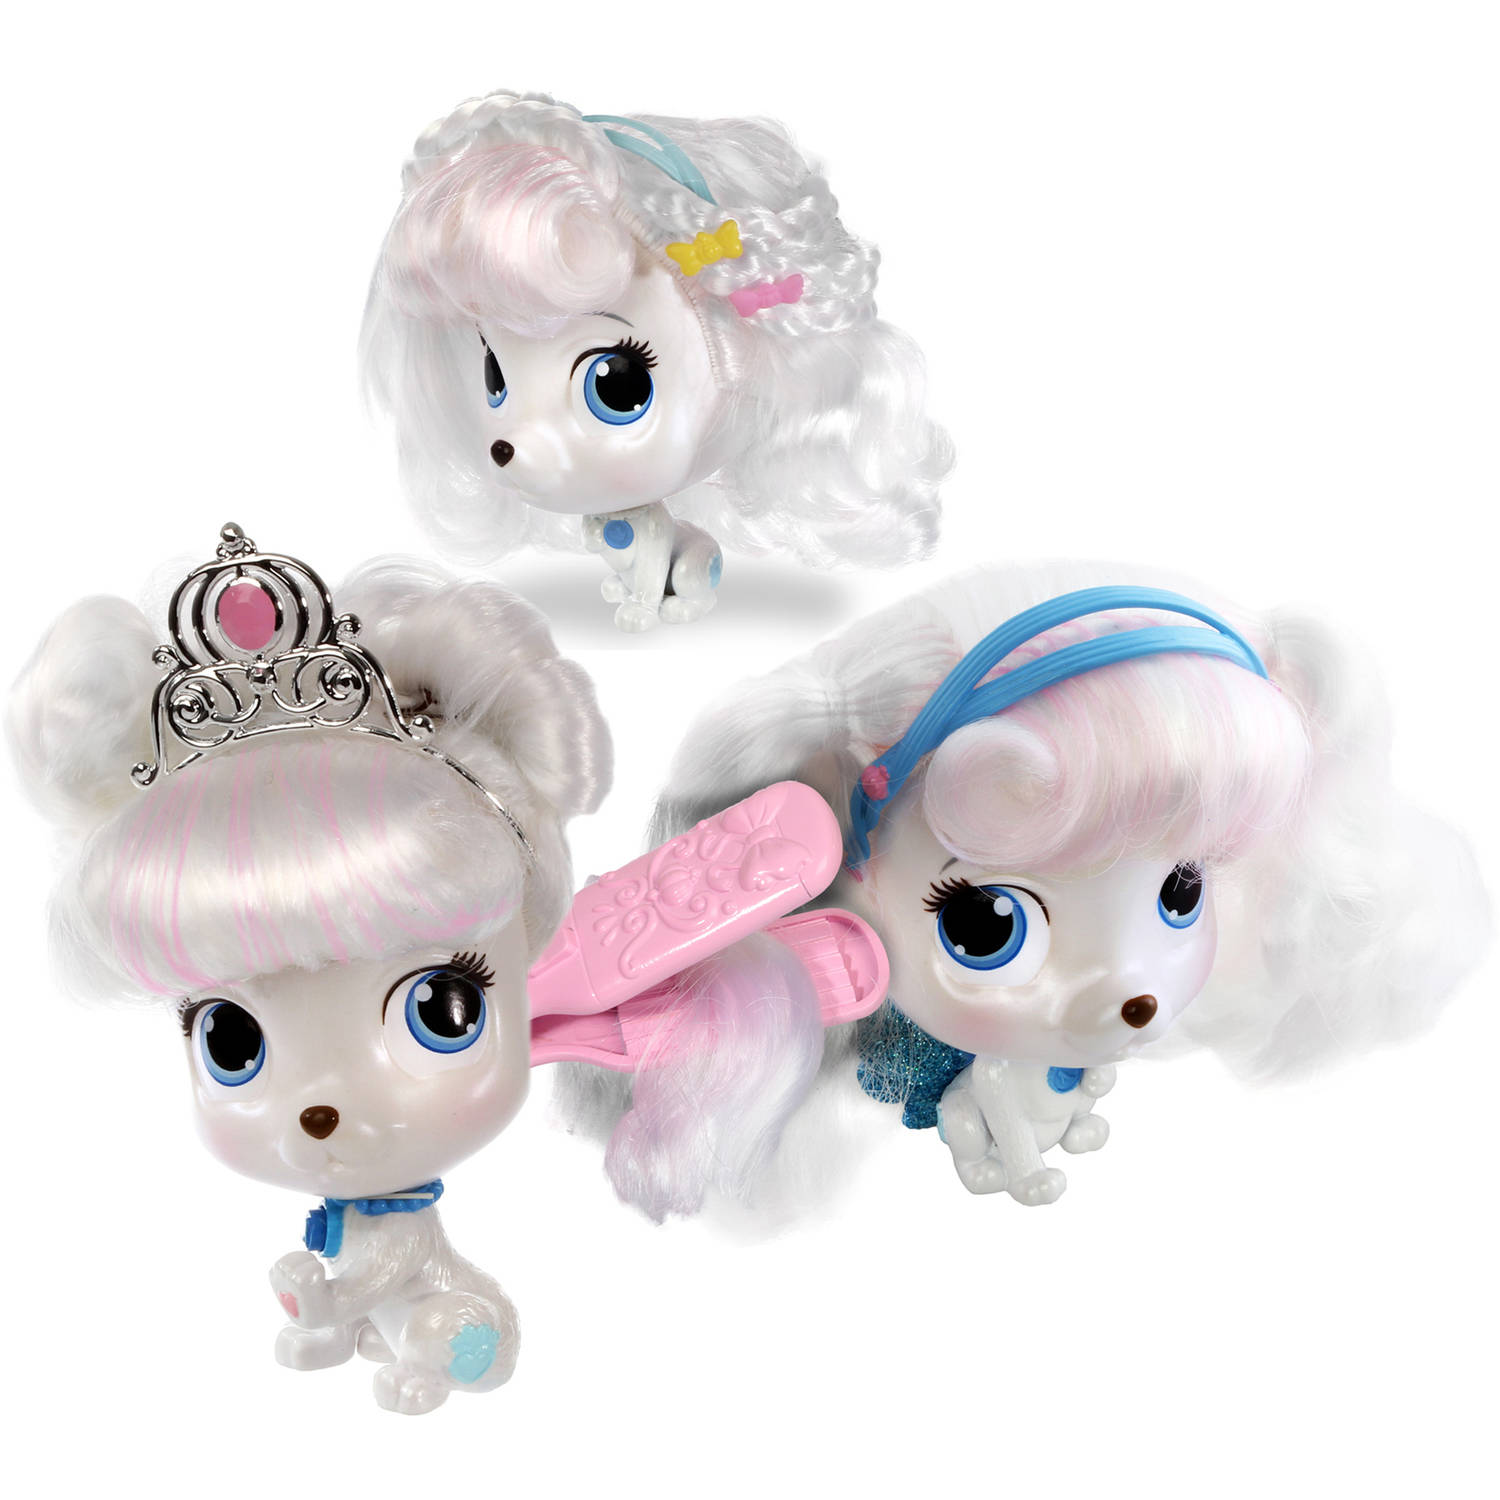 Disney Princess Palace Pets Pawfection Styling Head Cinderella's Puppy, Pumpkin by